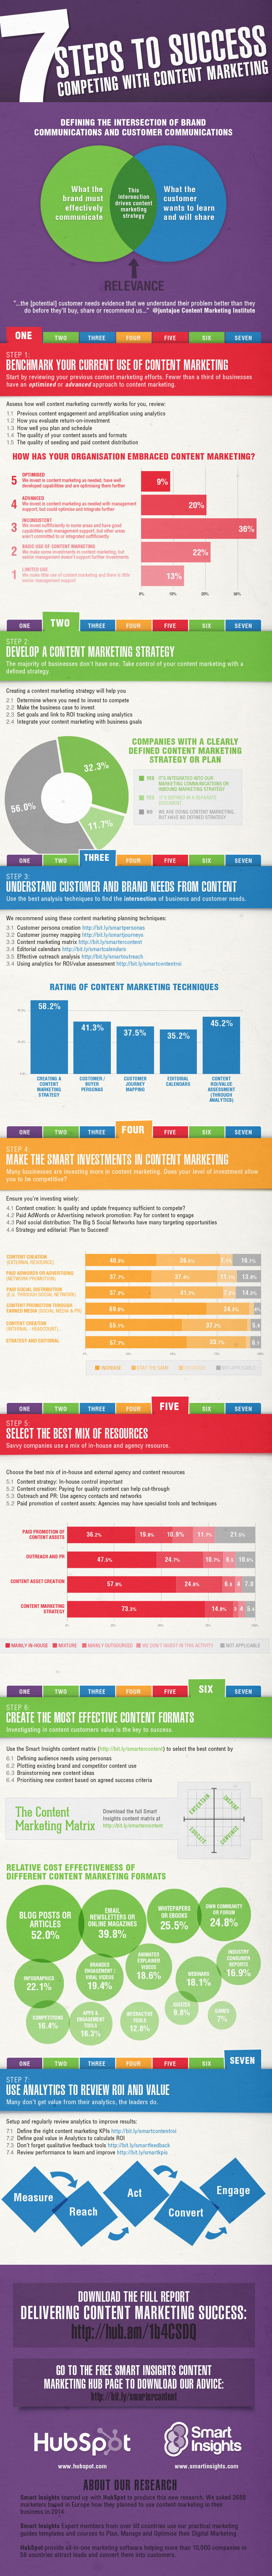 7 Steps to Content Marketing Success: Competing with Content Marketing - infographic